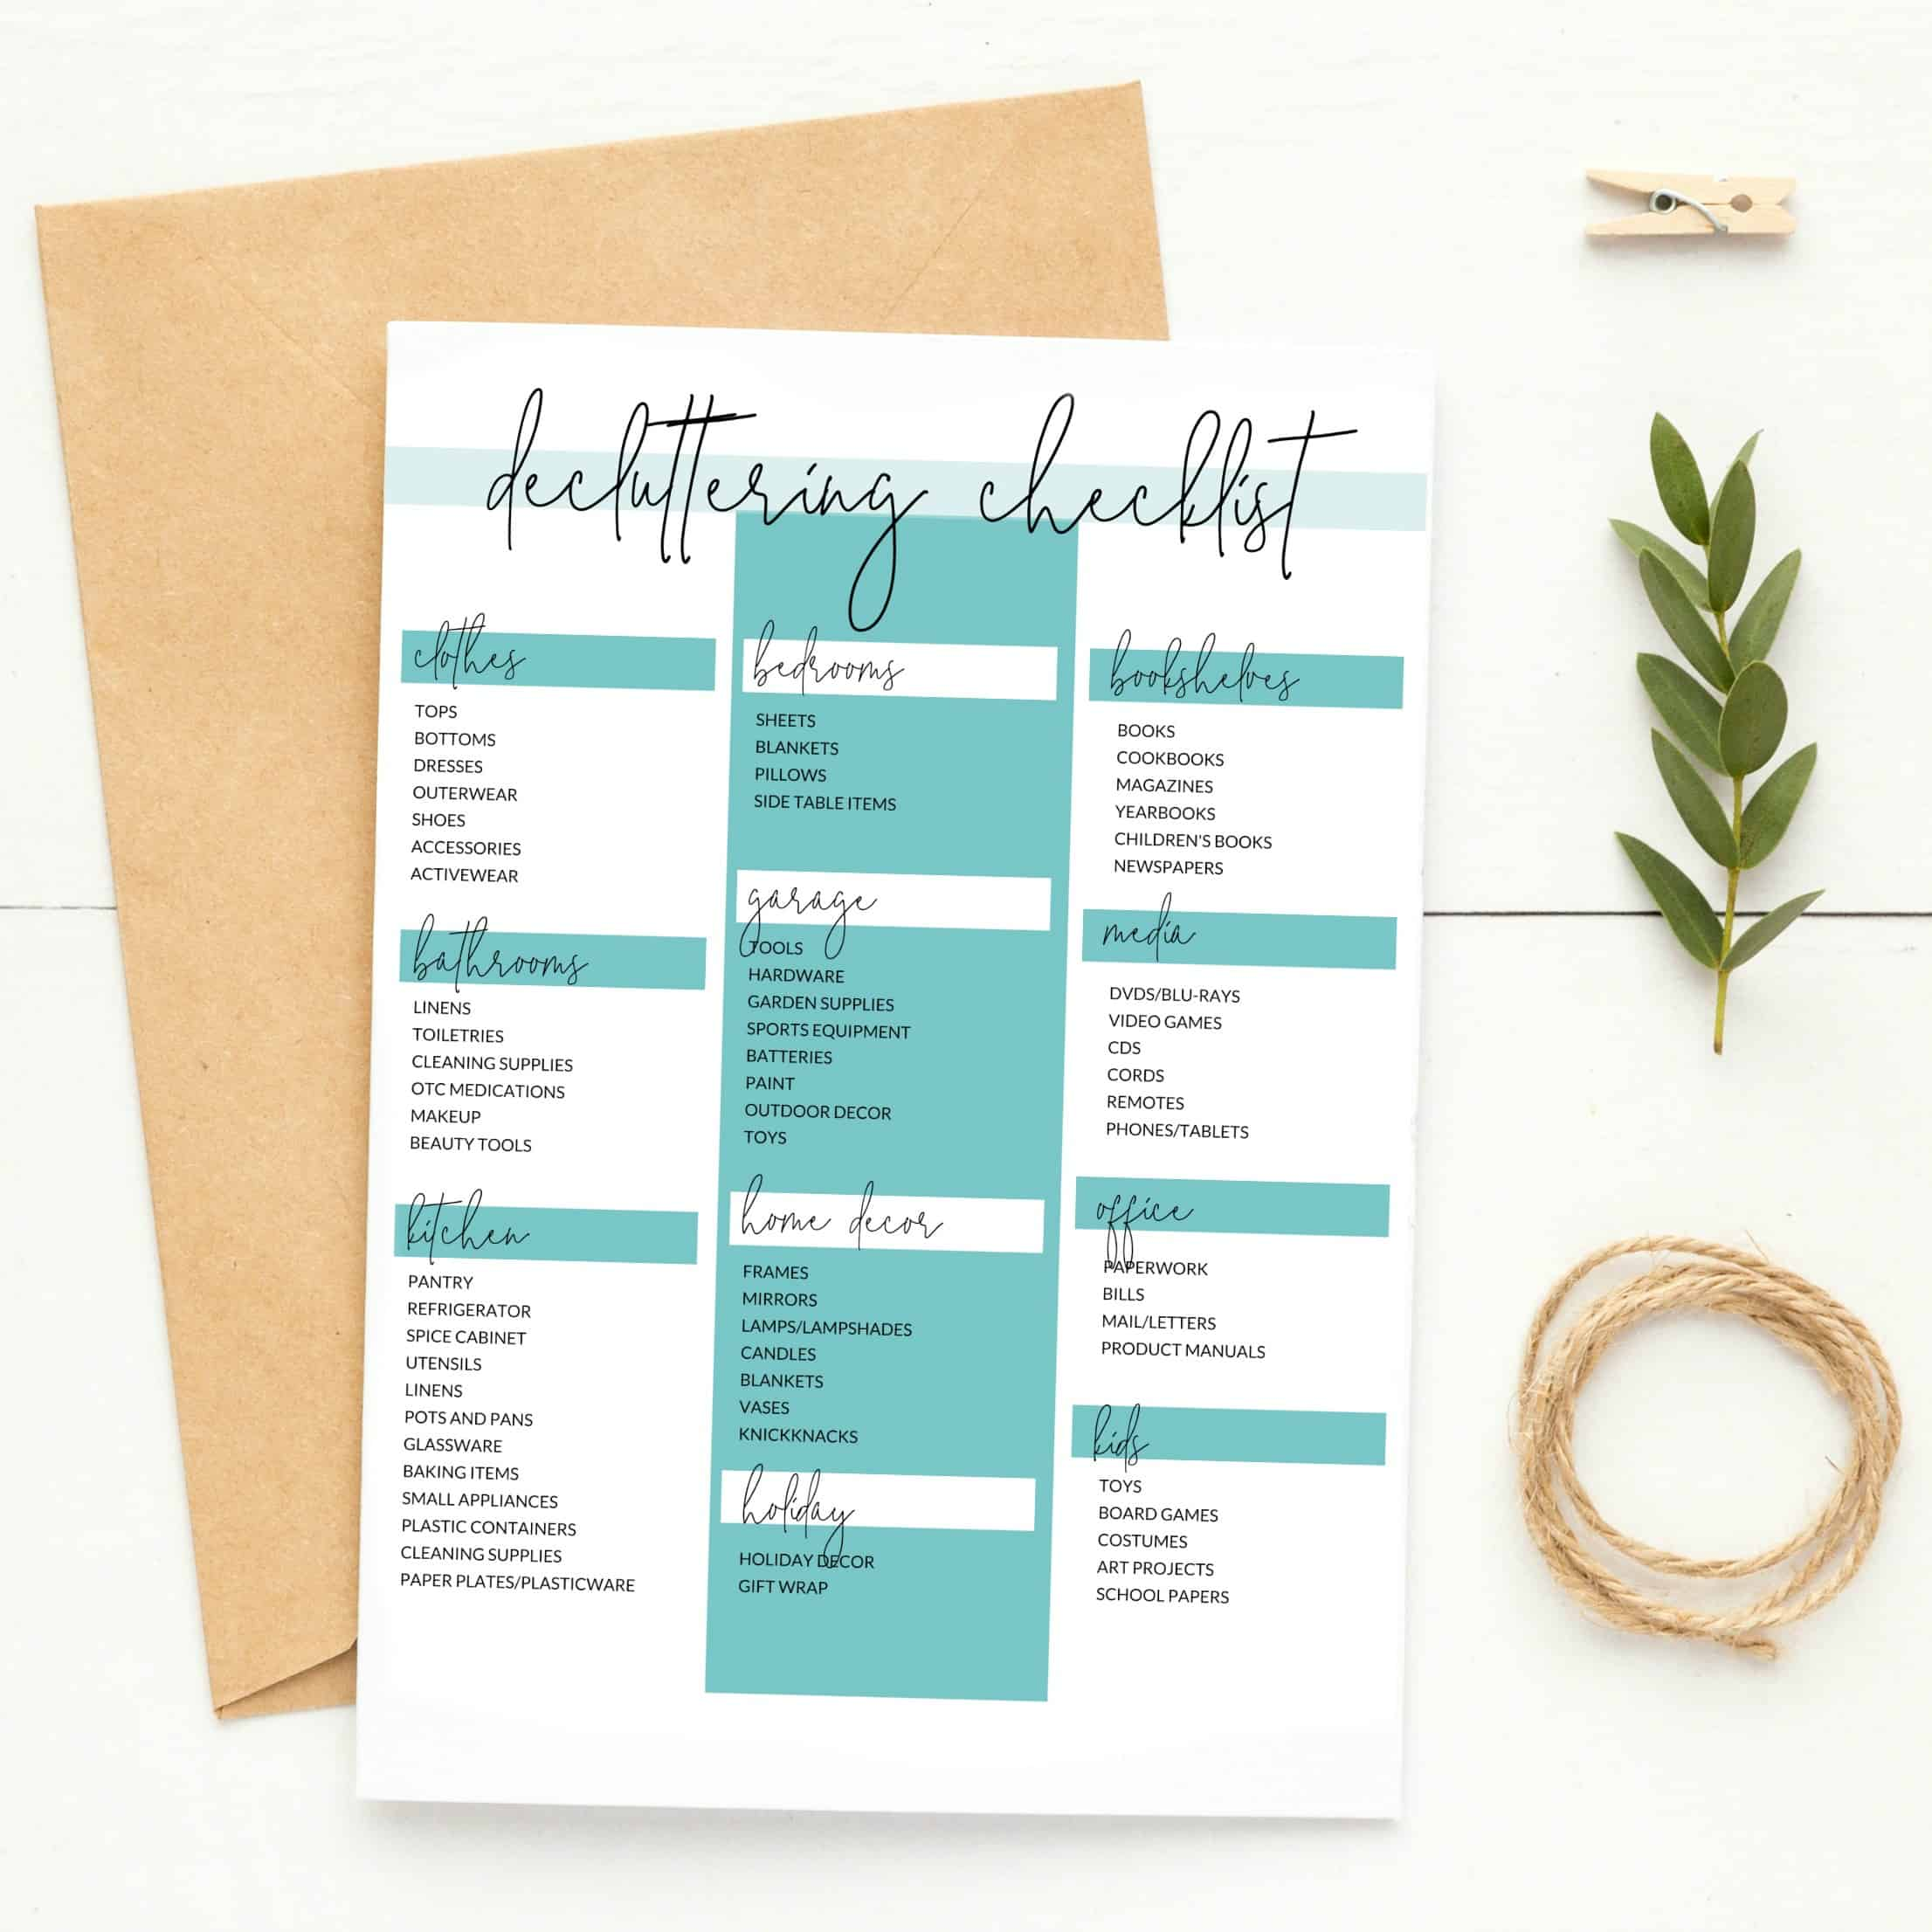 Declutter and Organize Checklists